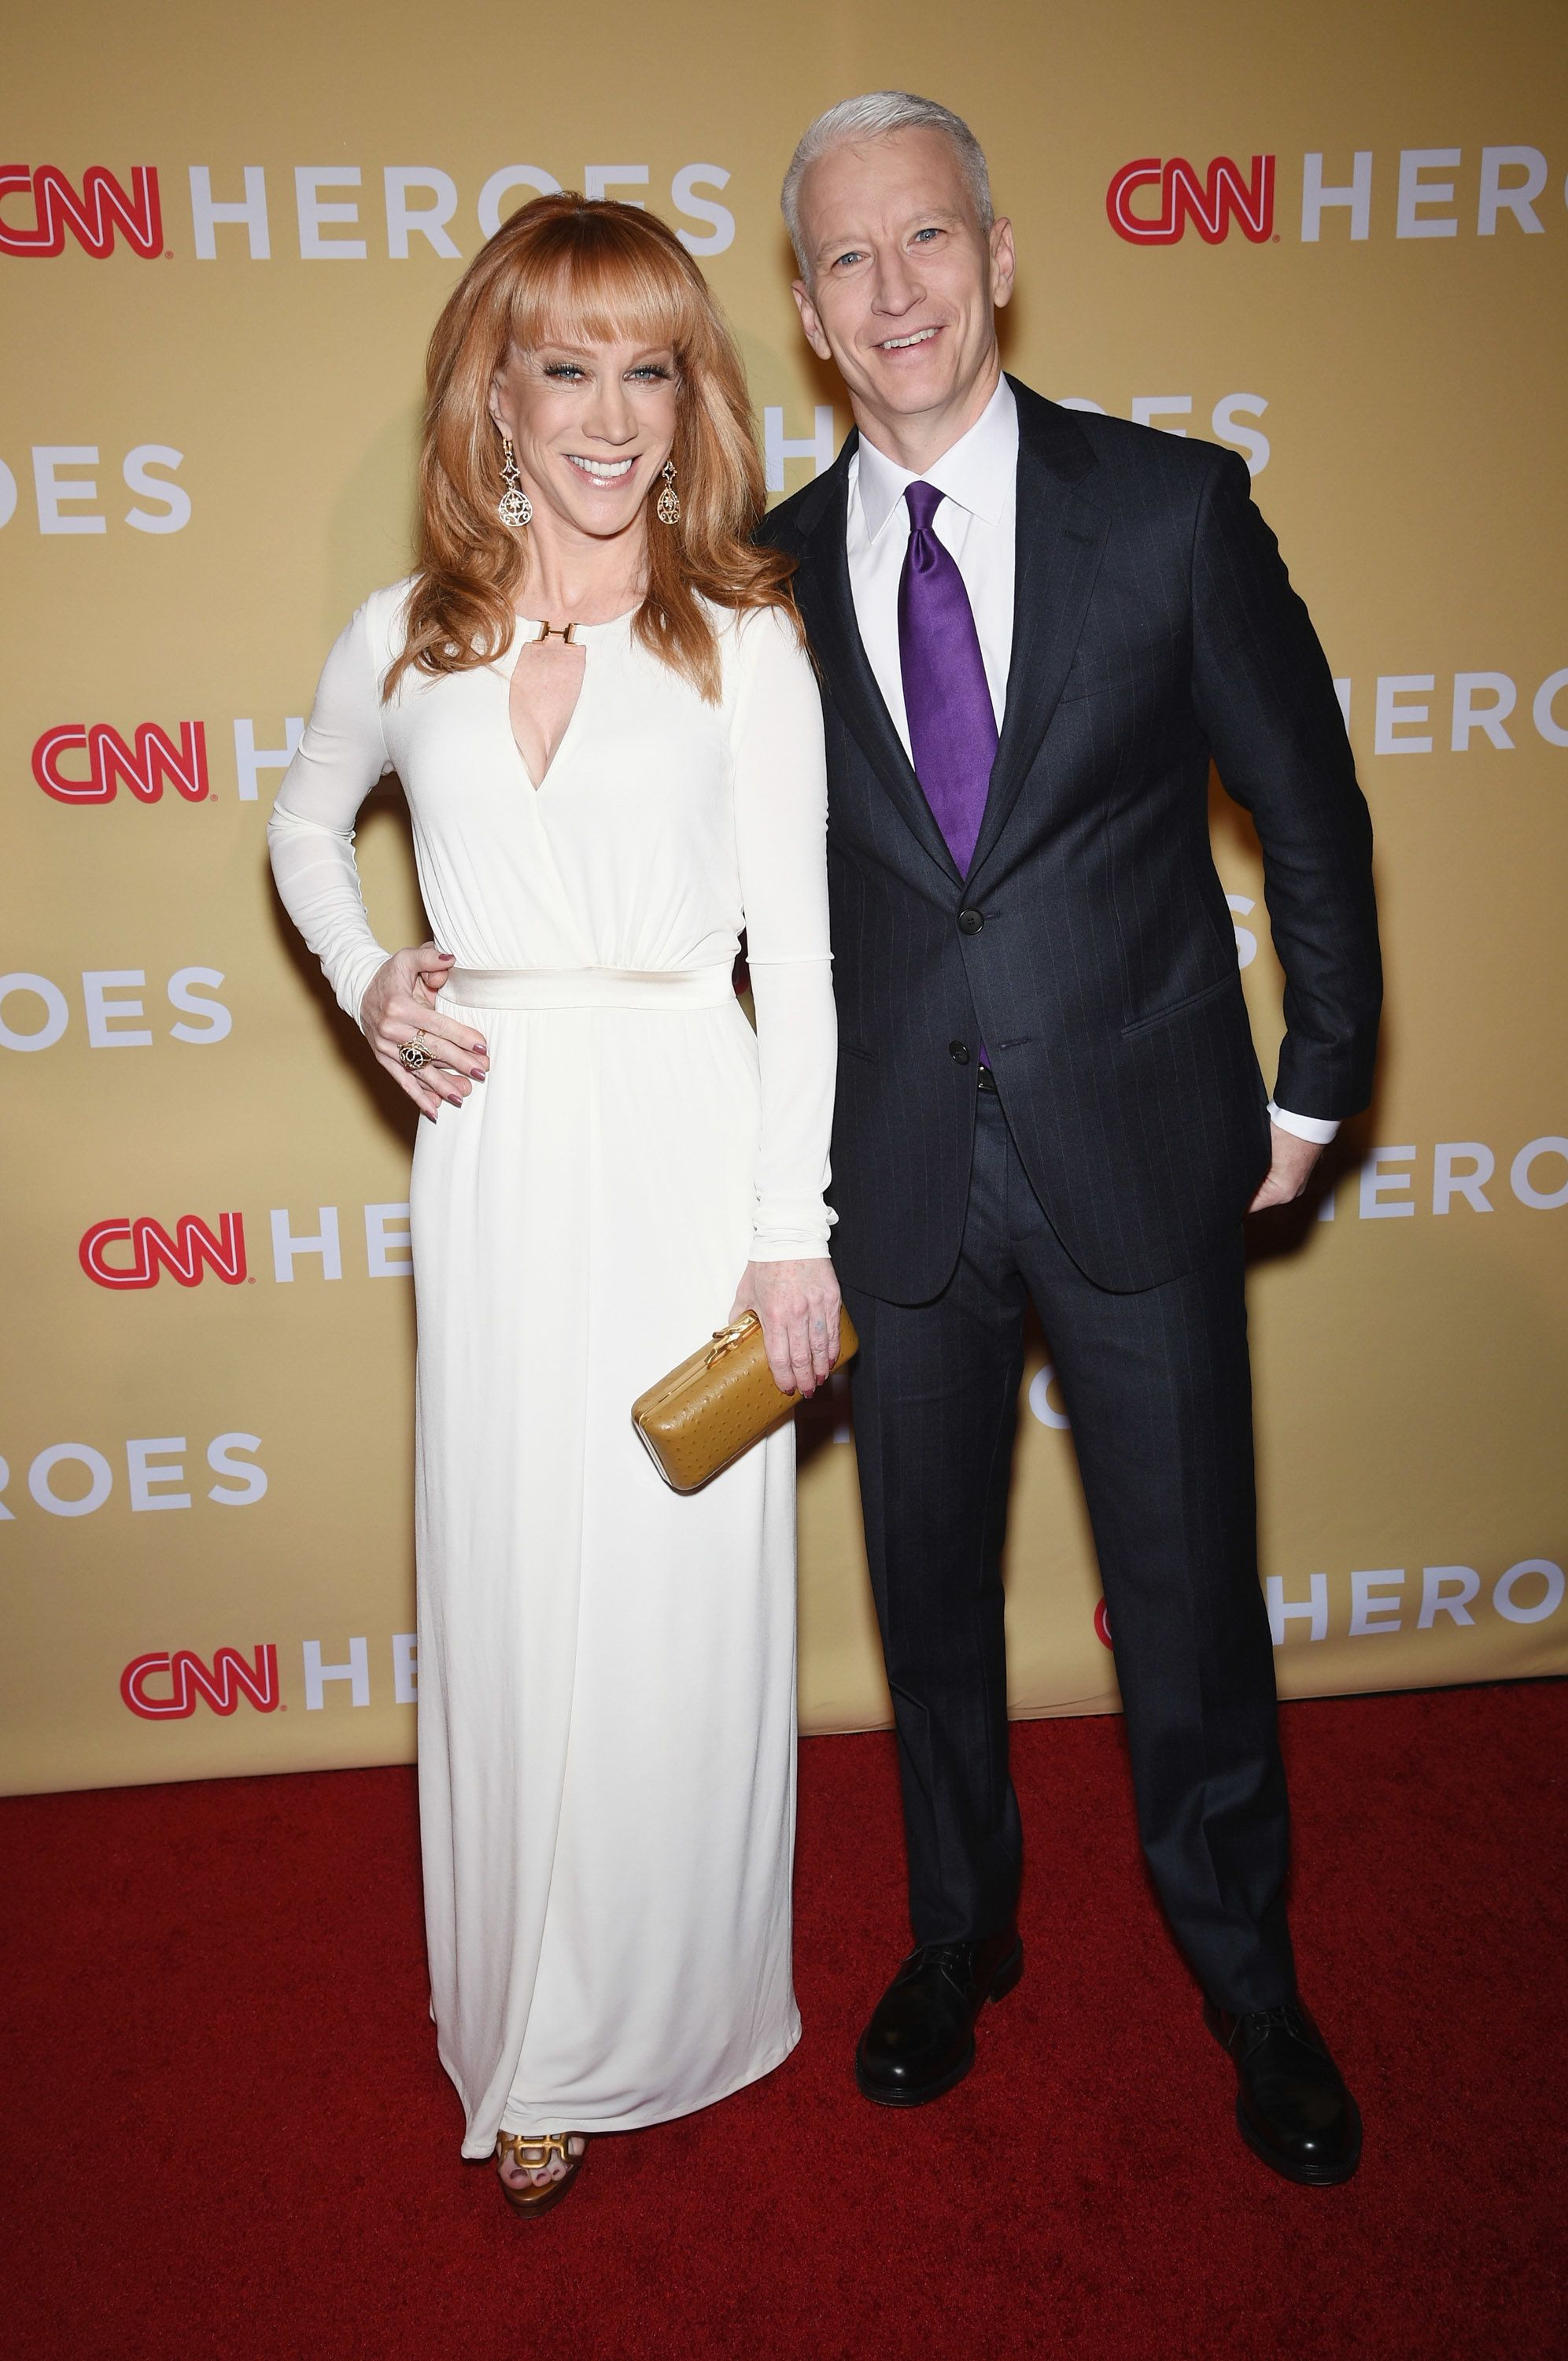 NEW YORK, NY - NOVEMBER 18:  Kathy Griffin and Anderson attend the 2014 CNN Heroes: An All Star Tribute at American Museum of Natural History on November 18, 2014 in New York City.  25214_002_0328.JPG  (Photo by Dimitrios Kambouris/WireImage for CNN)